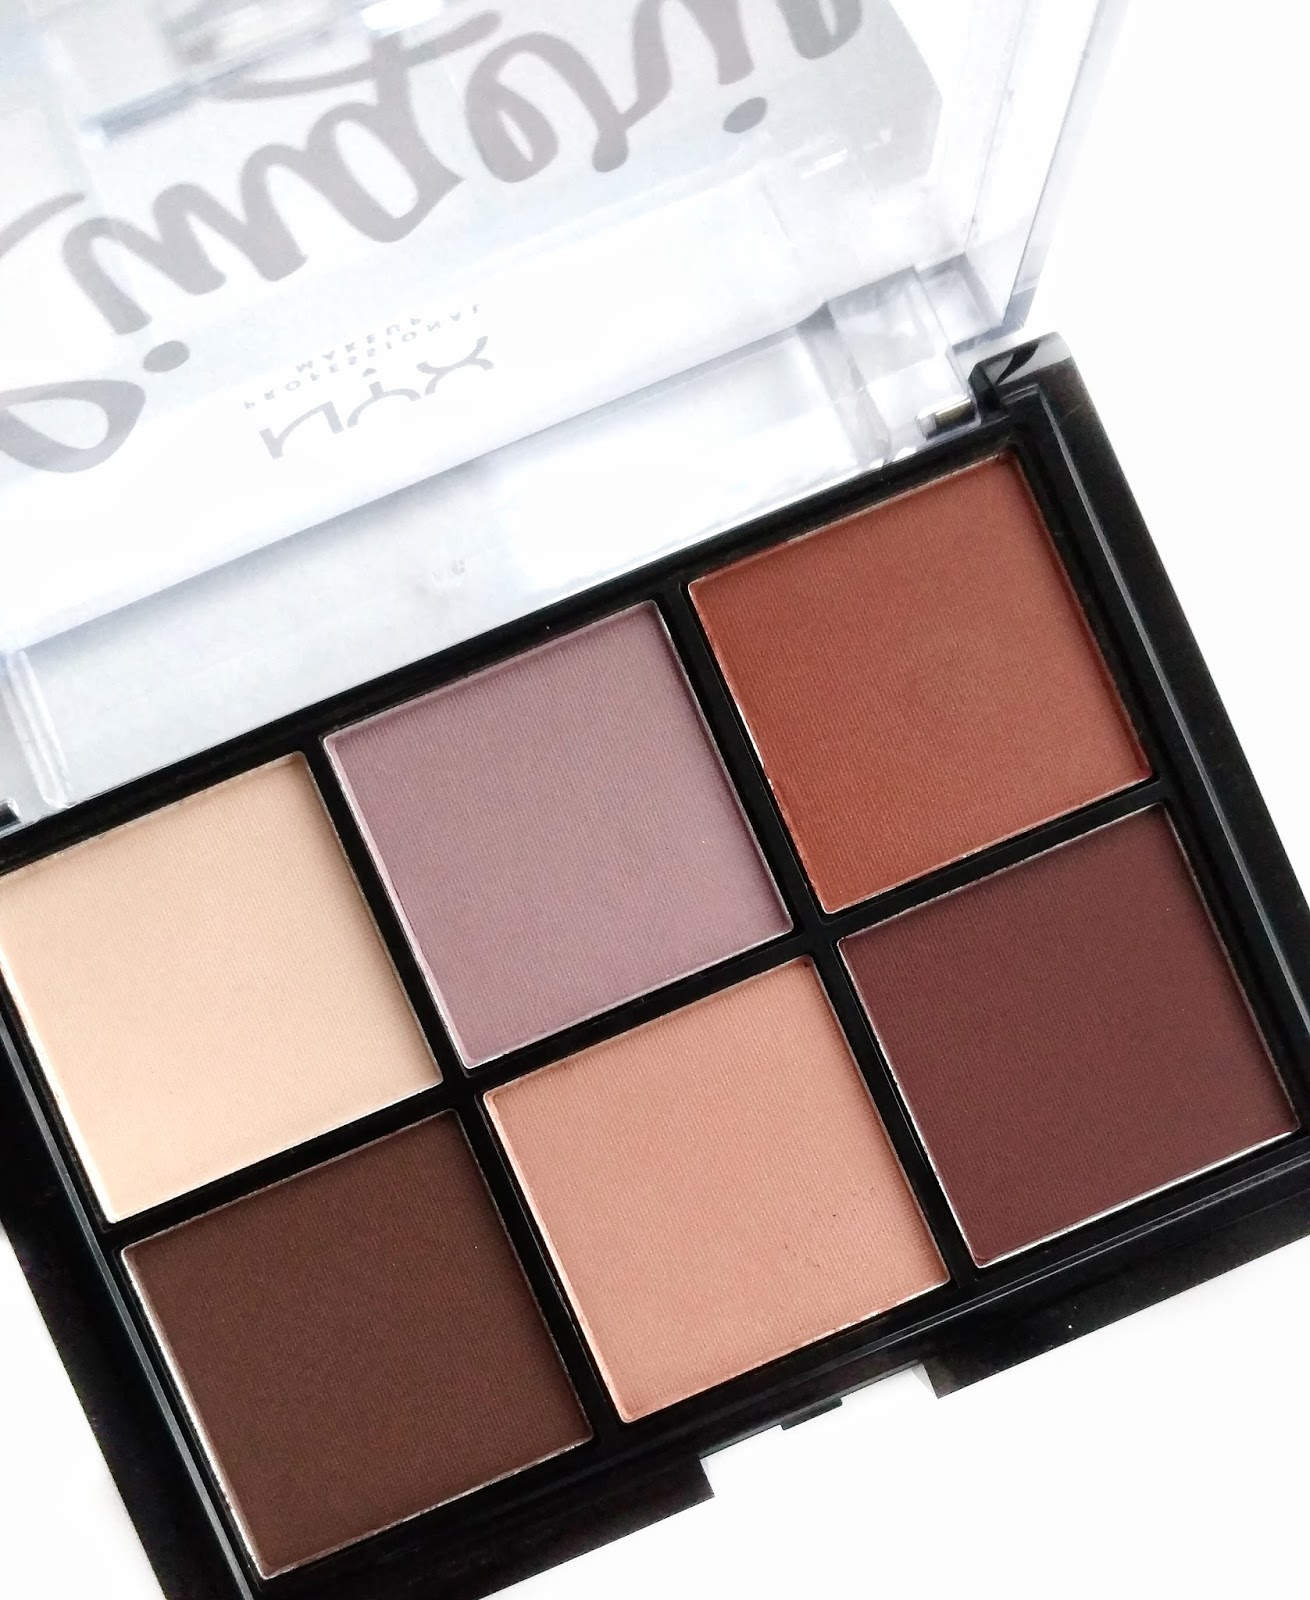 NYX Lid Lingerie Shadow Palette Review & Swatches - Beauddiction